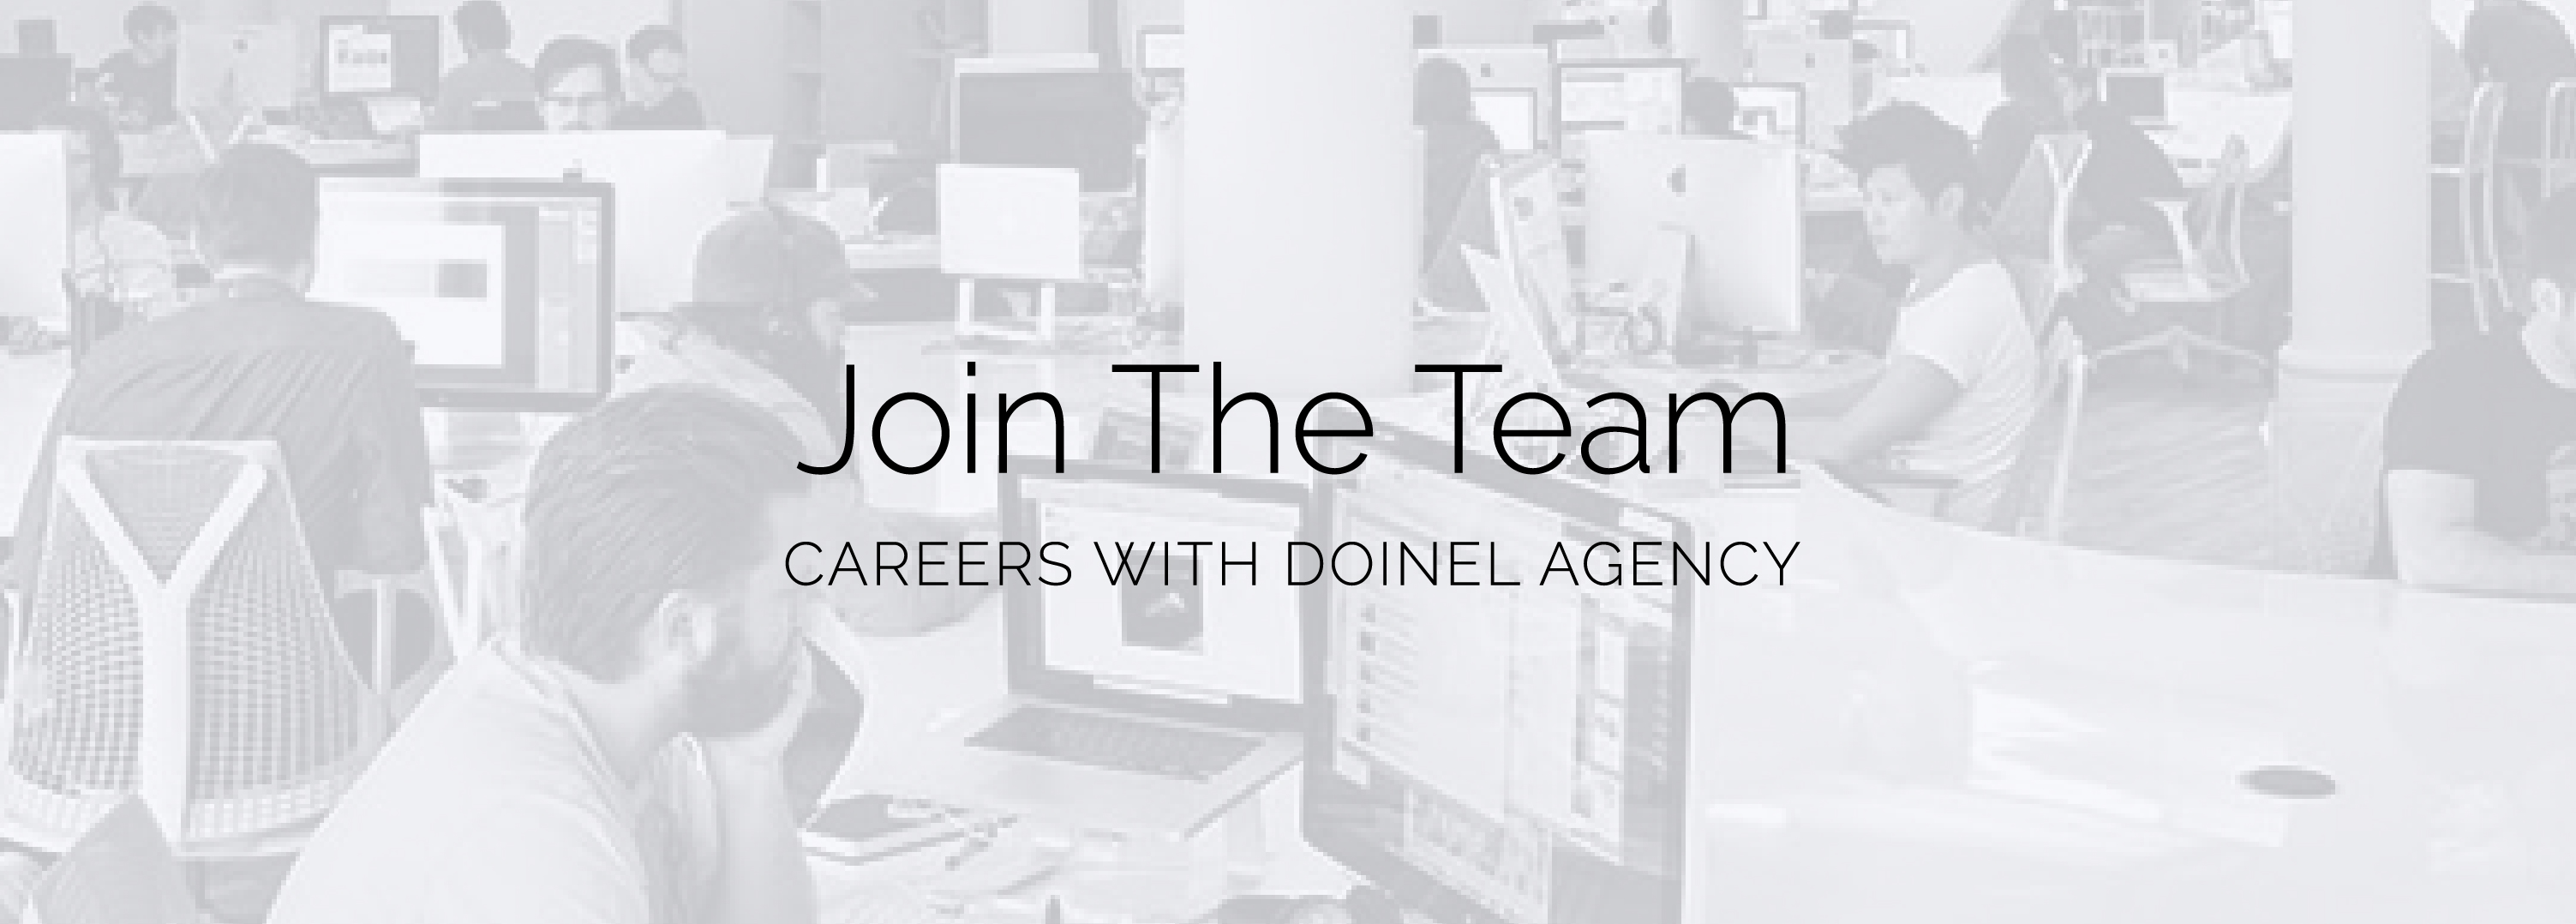 The Doinel Agency